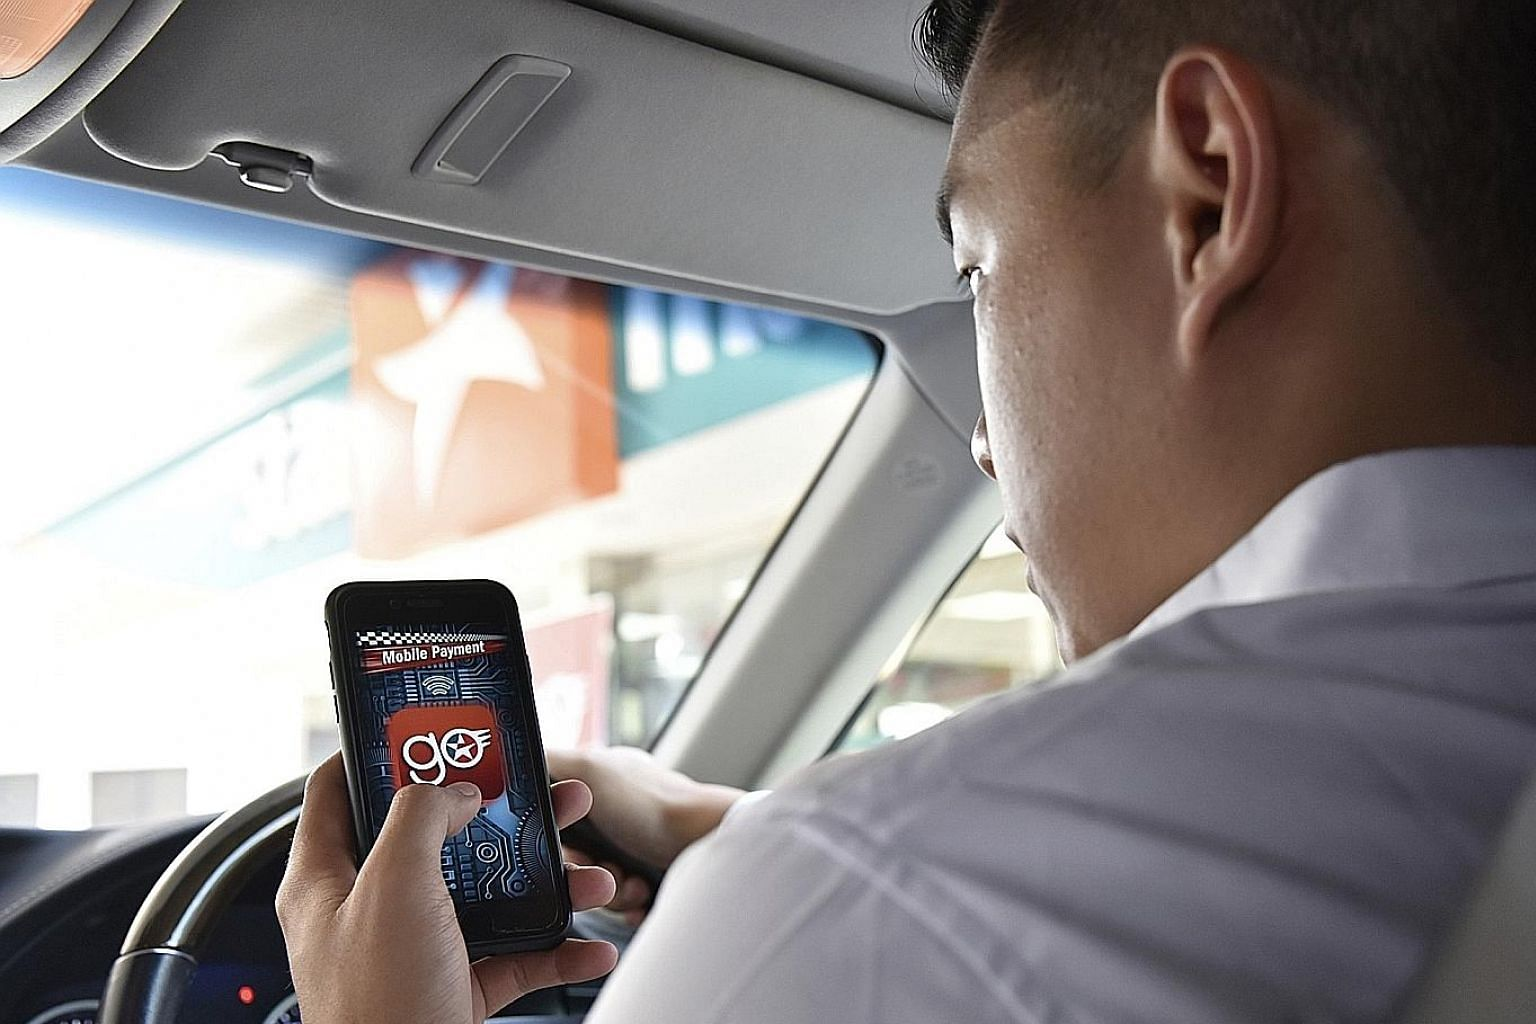 With the CaltexGO app, a driver can pay for fuel in less than 20 seconds. Singapore is the first in the region to have the app.